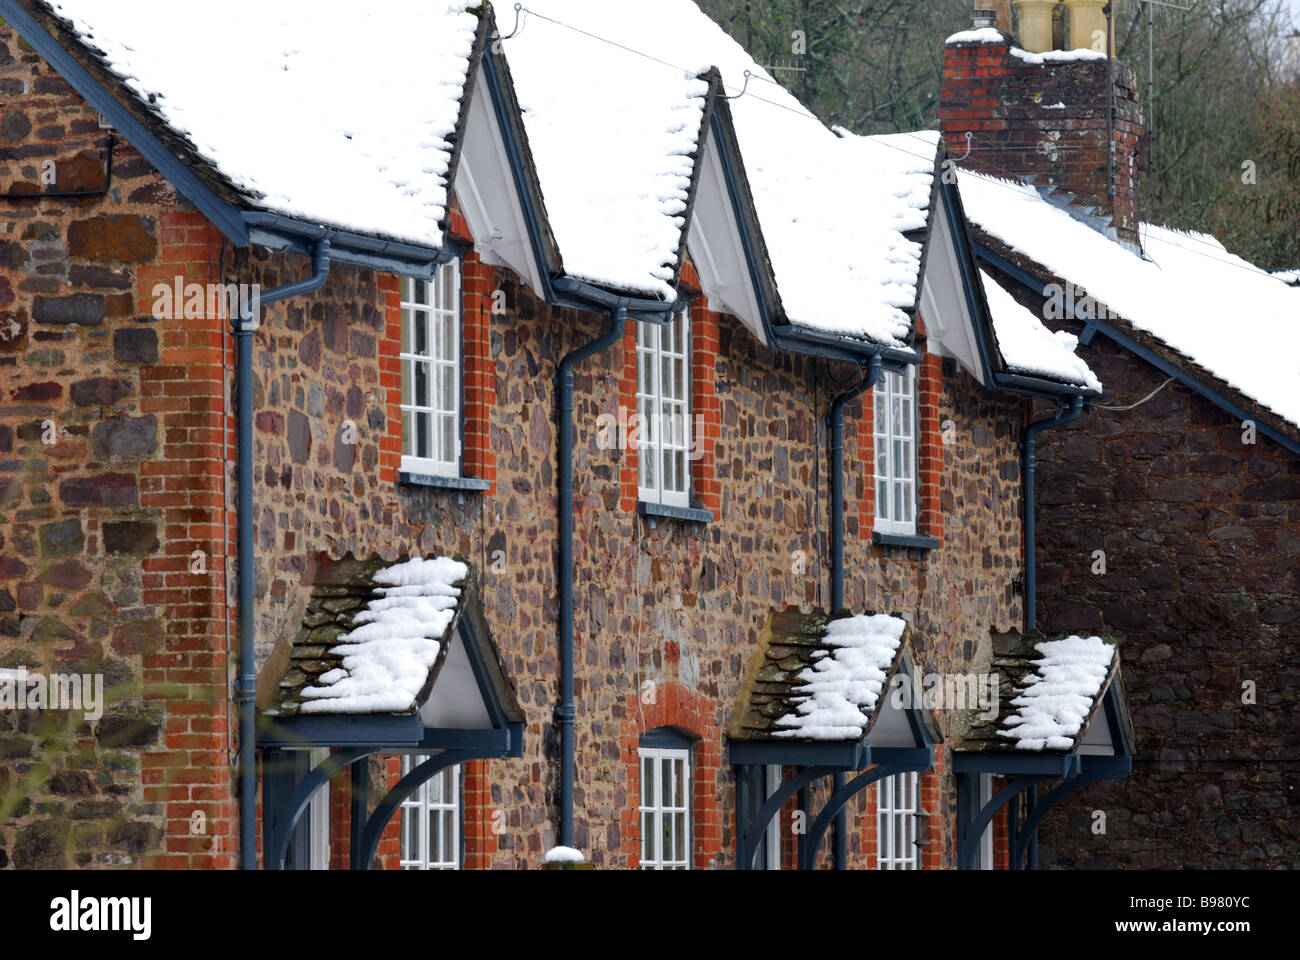 A dusting of snow on the rooftops of houses on the National Trusts Knightshayes court estate in Devon - Stock Image